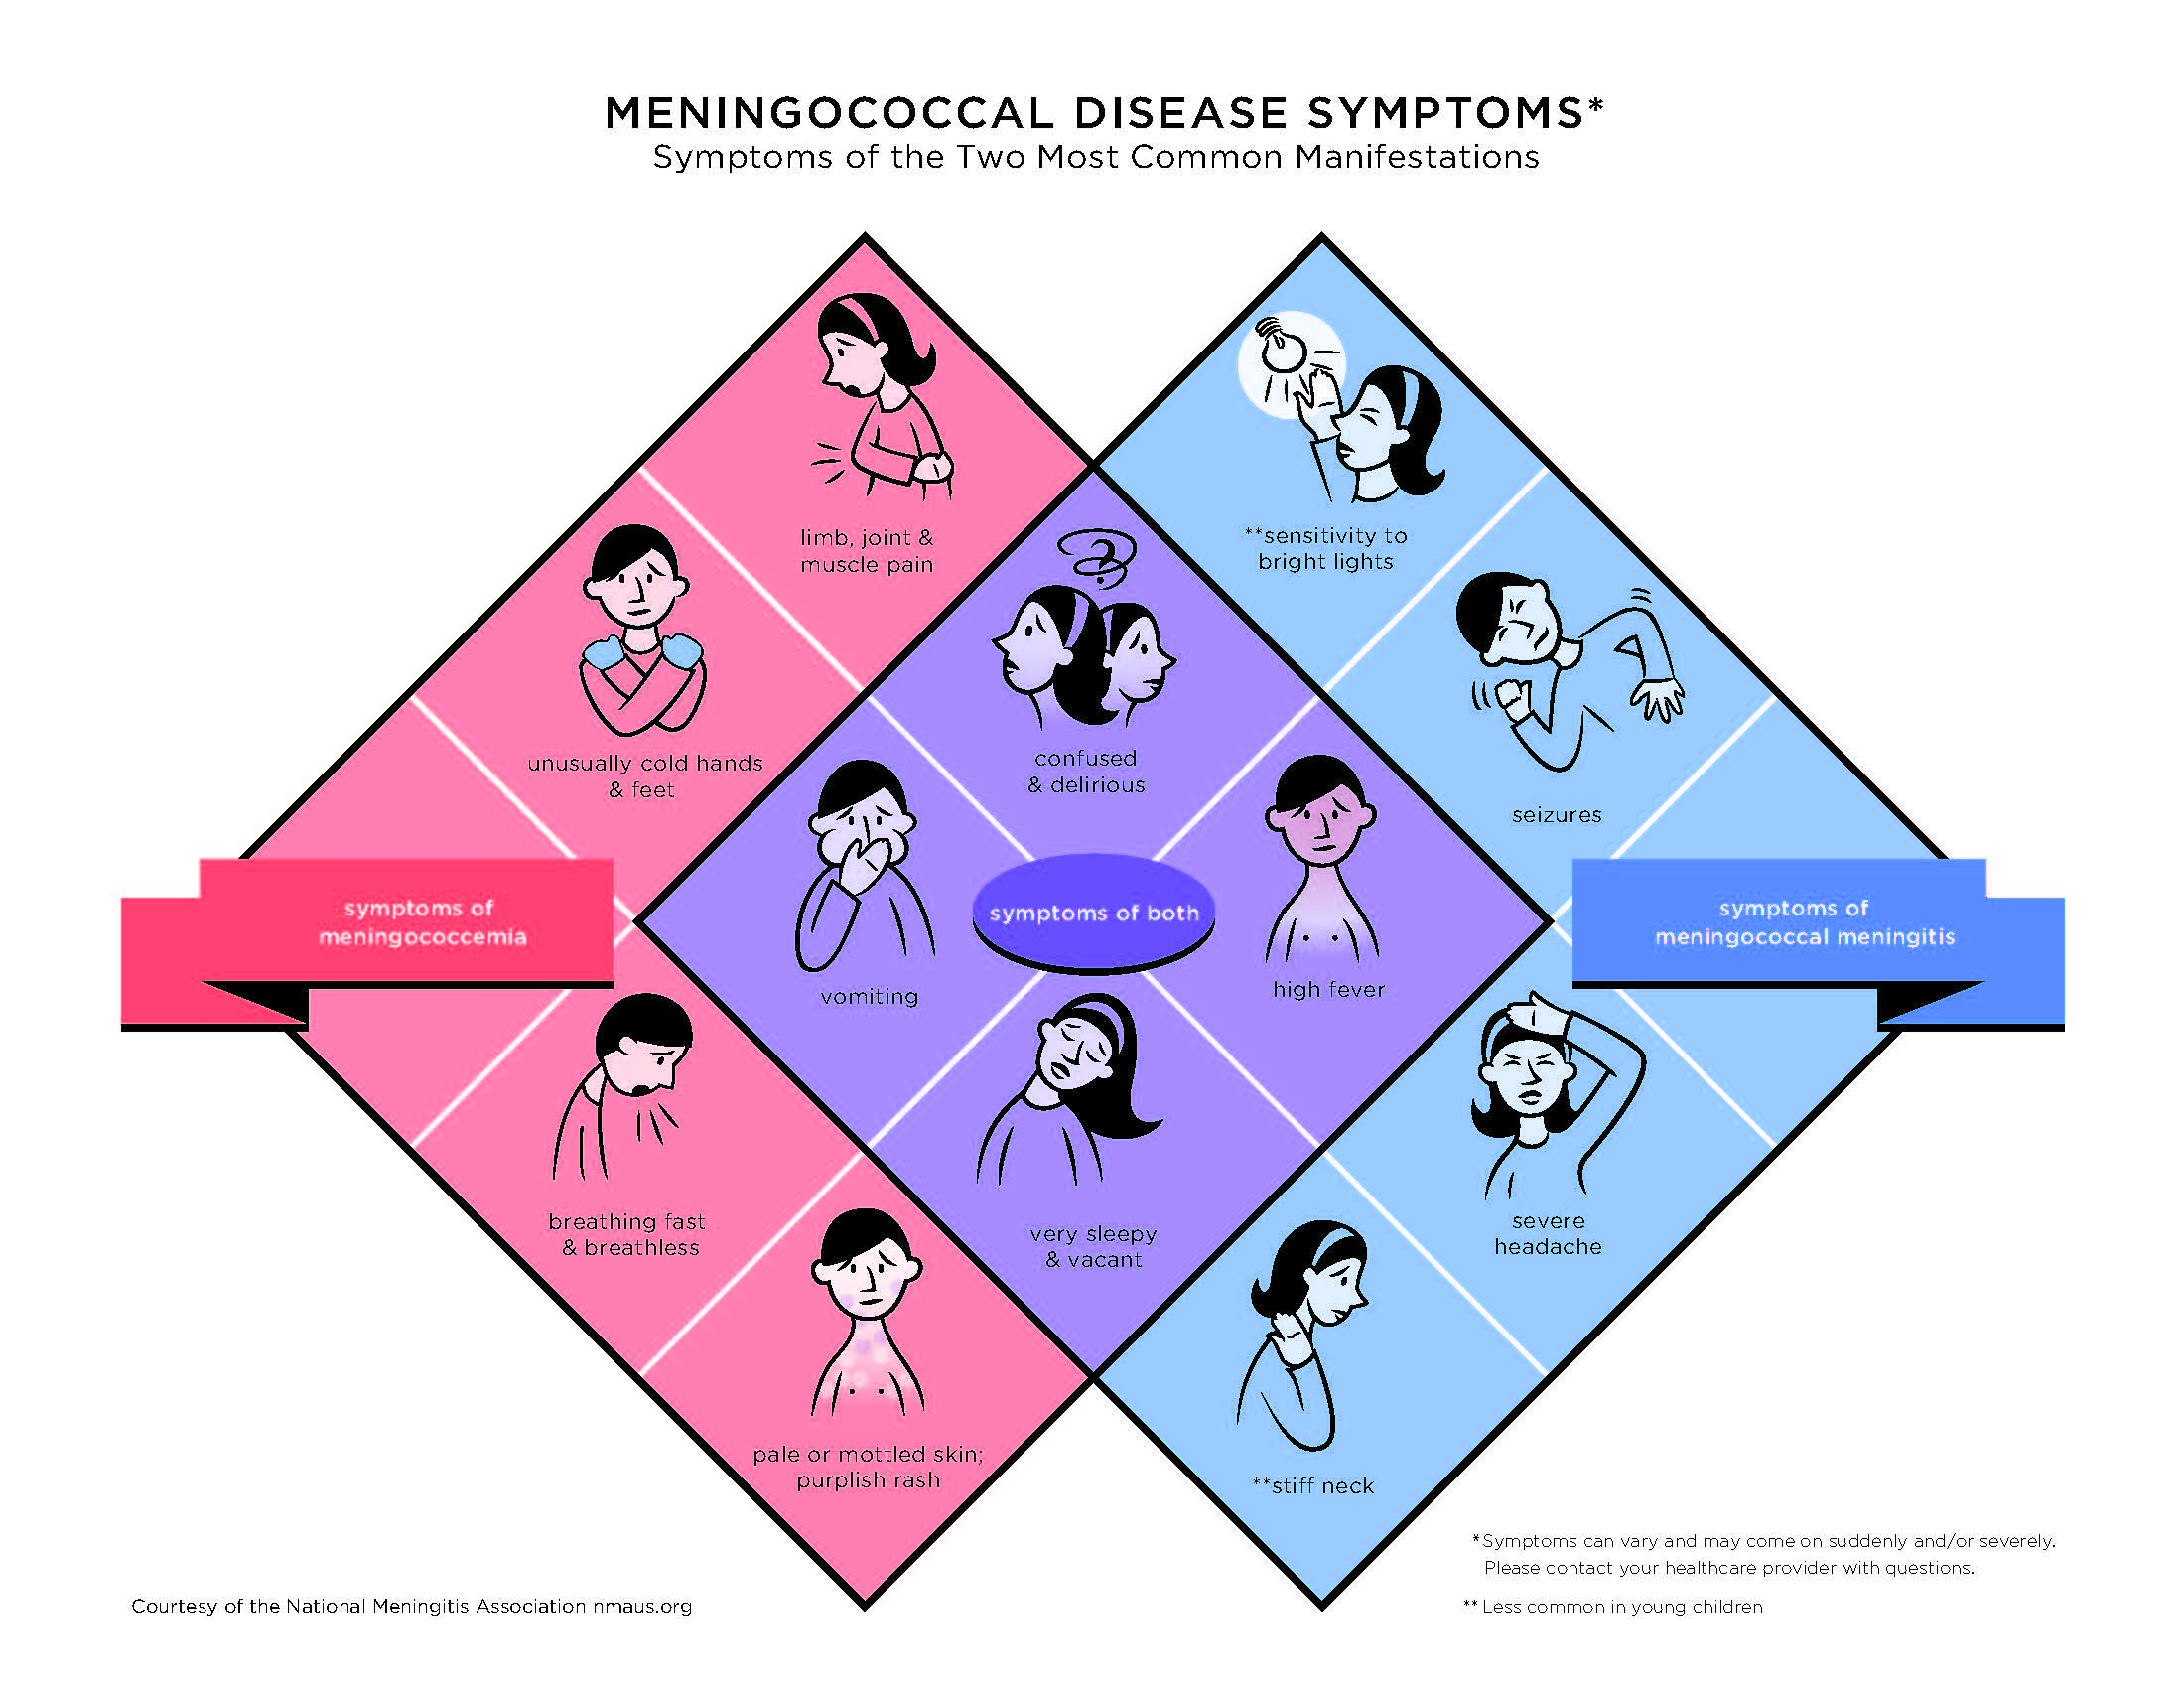 How to Prevent Meningitis How to Prevent Meningitis new picture